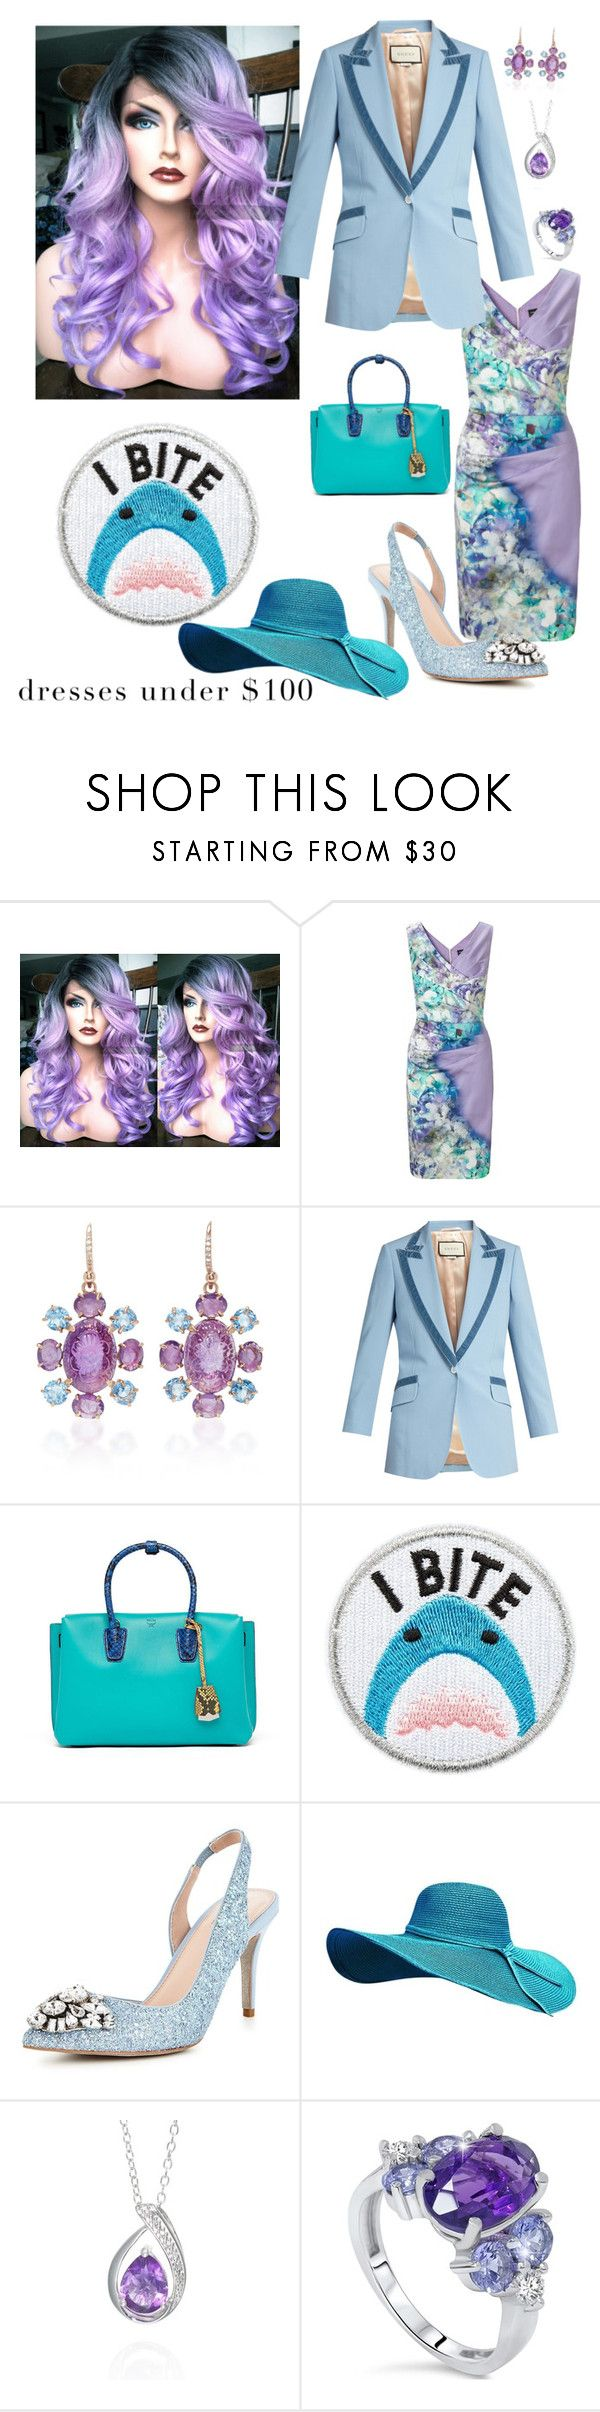 """I Bite"" by scope-stilettos ❤ liked on Polyvore featuring Ariella, Bounkit, Gucci, MCM, Skinnydip, Carvela and Belk & Co."